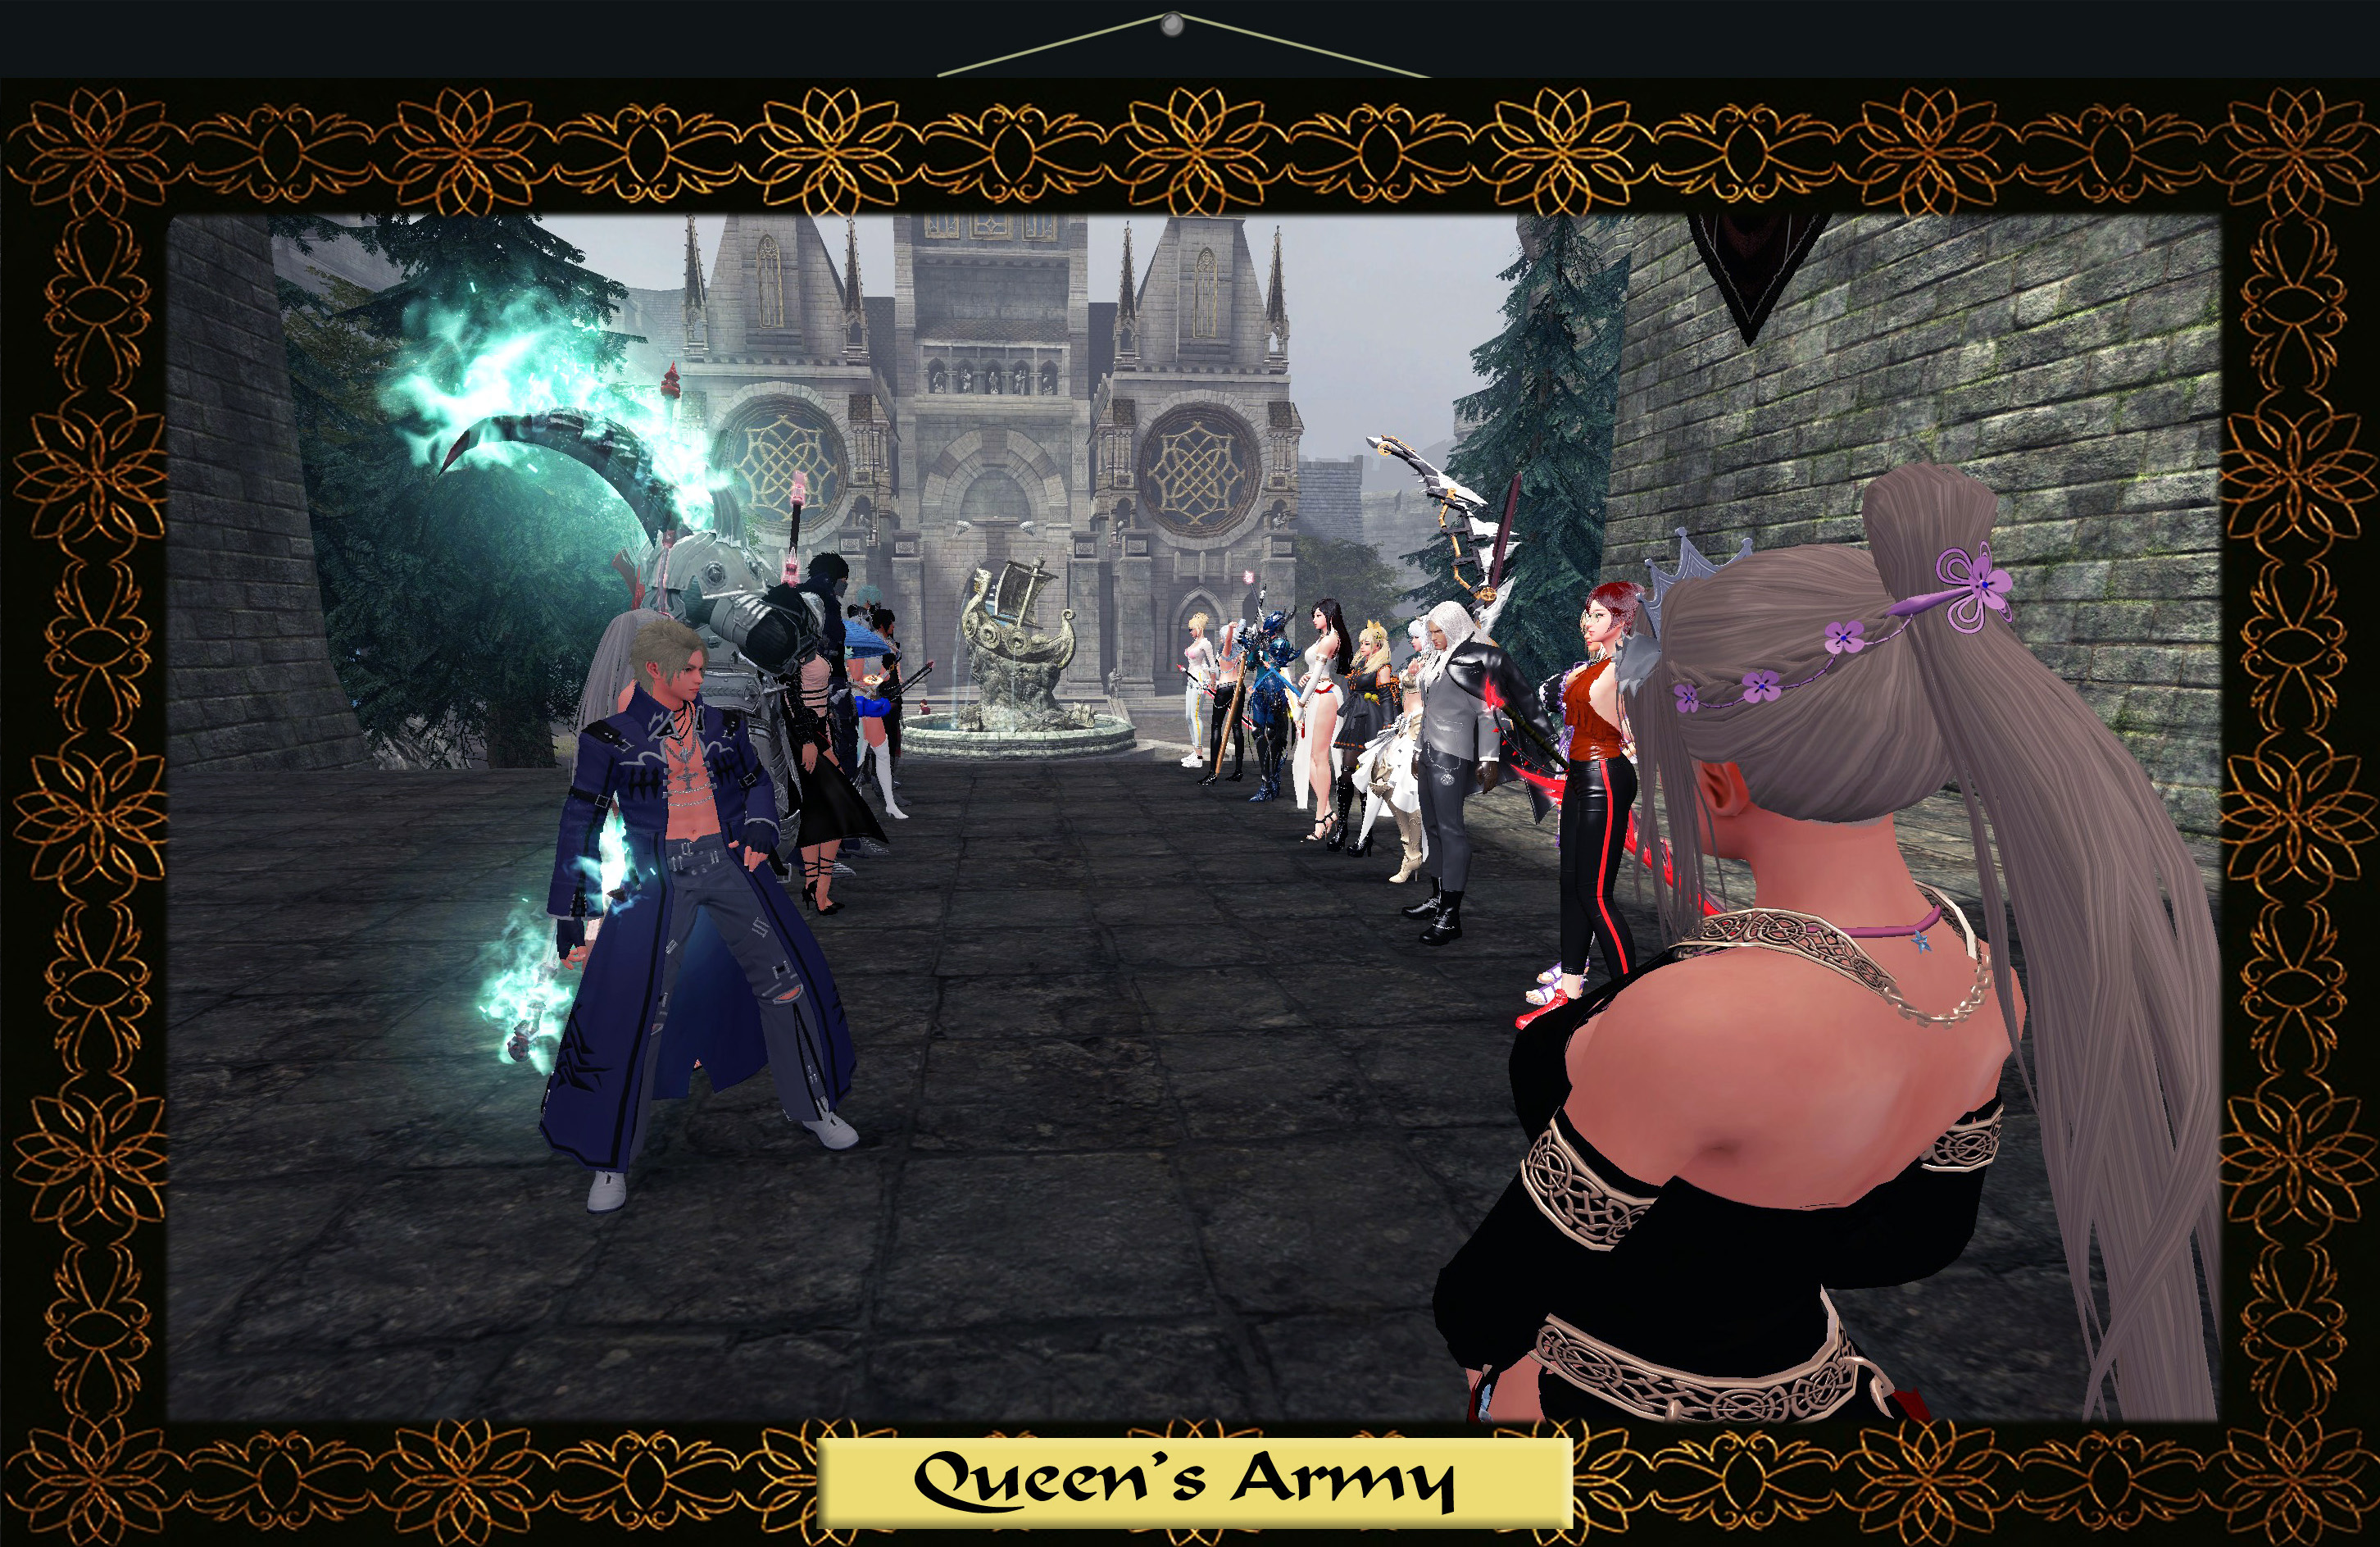 rocheste-rows-queen-army-framed.jpg